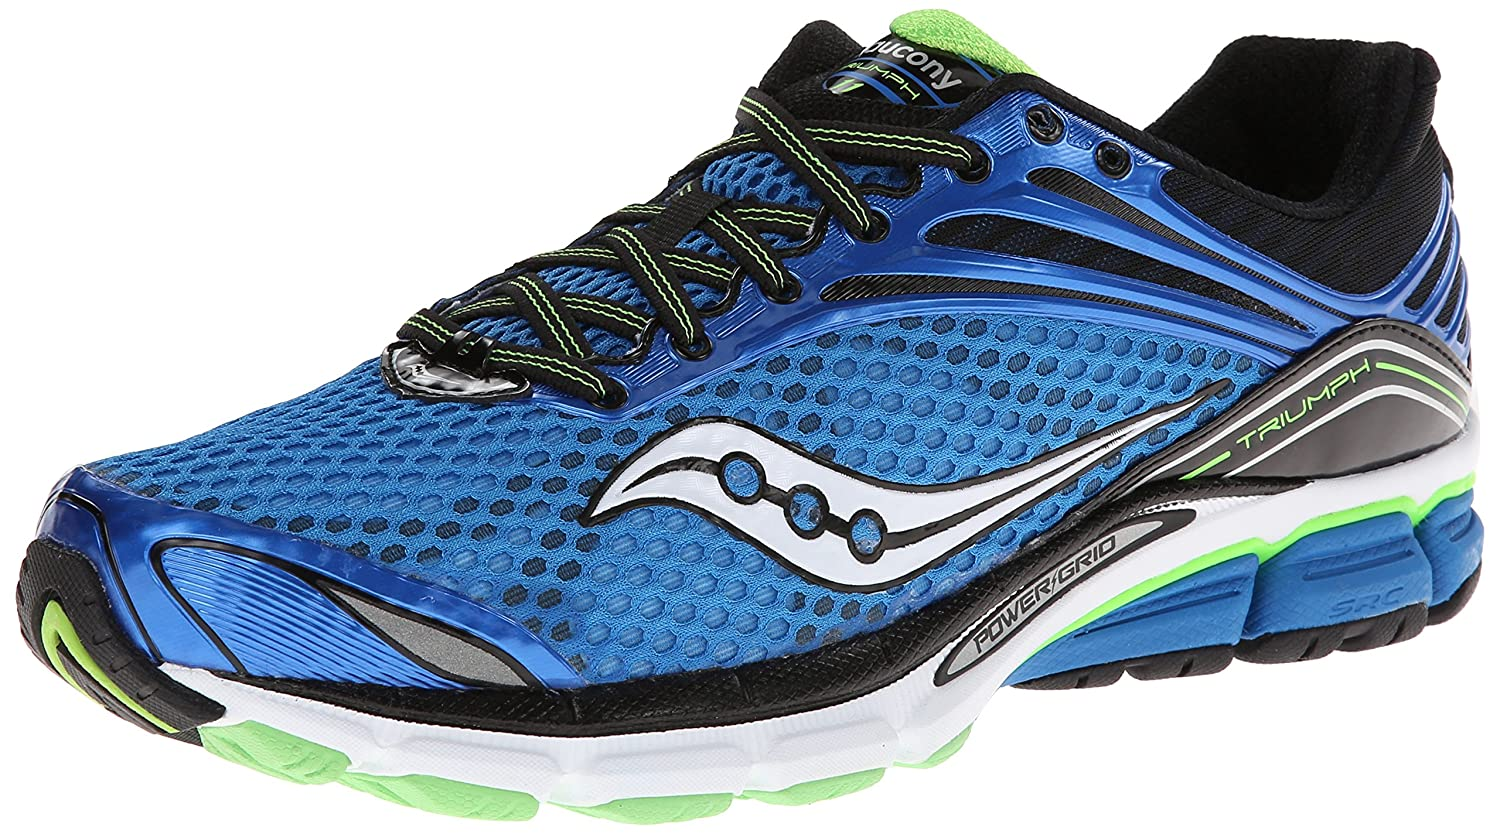 Saucony Men's Triumph 11 Running Shoe